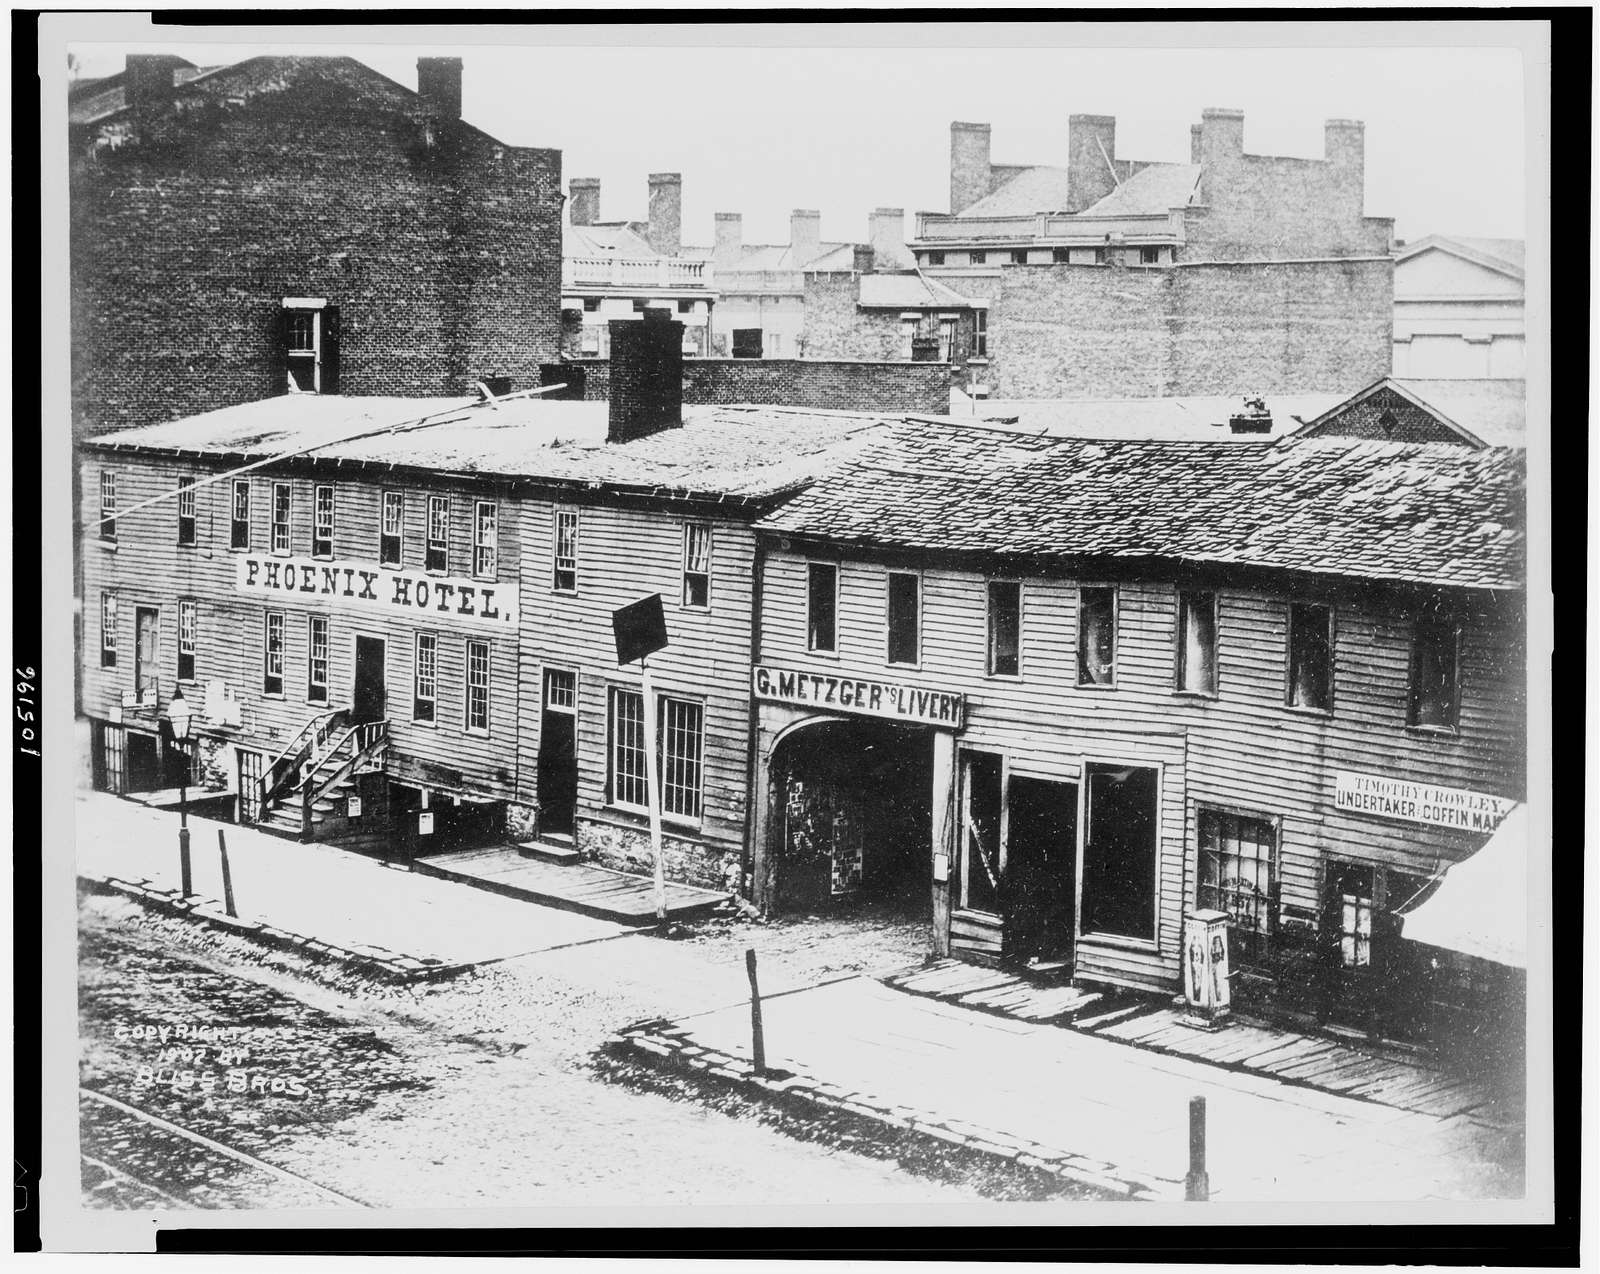 [Phoenix Hotel, G. Metzger's Livery, and Timothy Crowley, undertaker and coffin maker, Buffalo, New York]